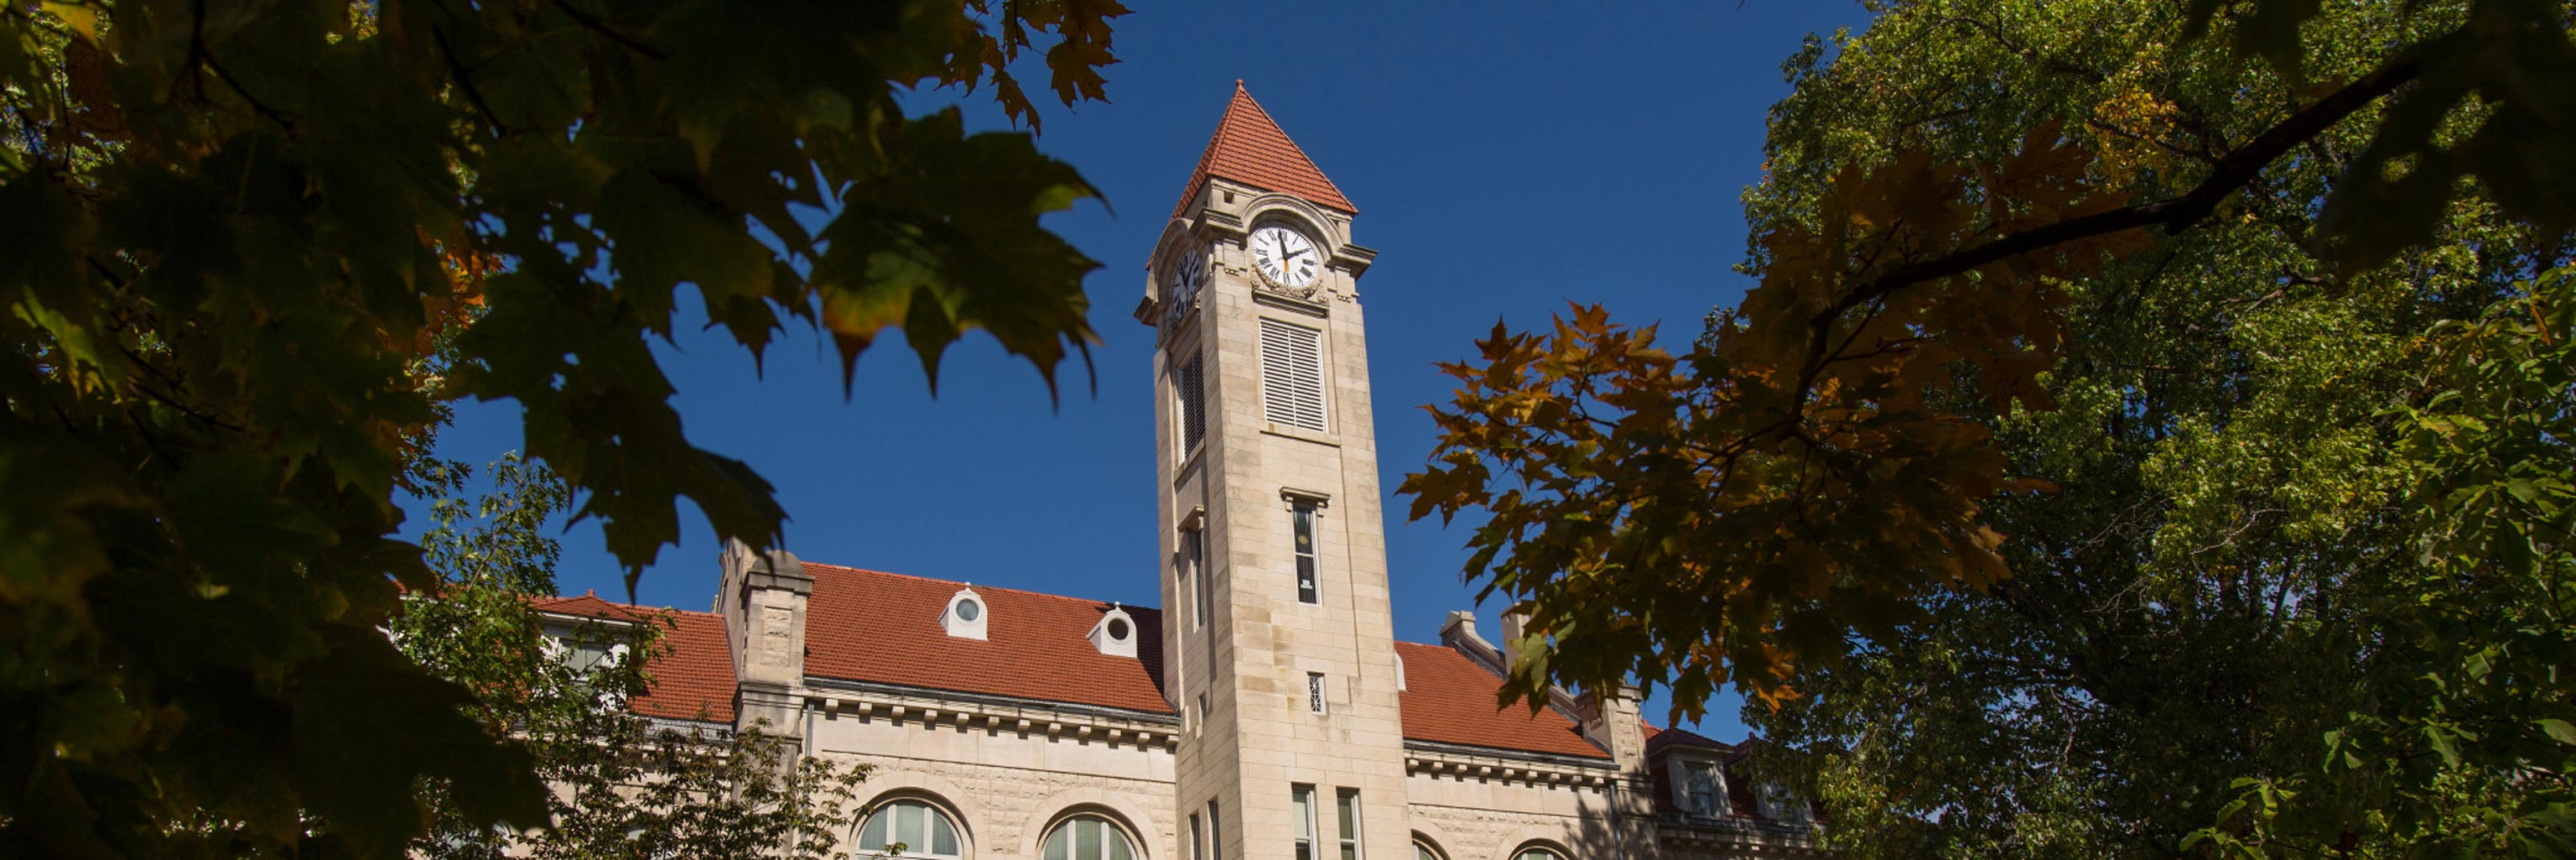 Clock tower of the IU Student Building